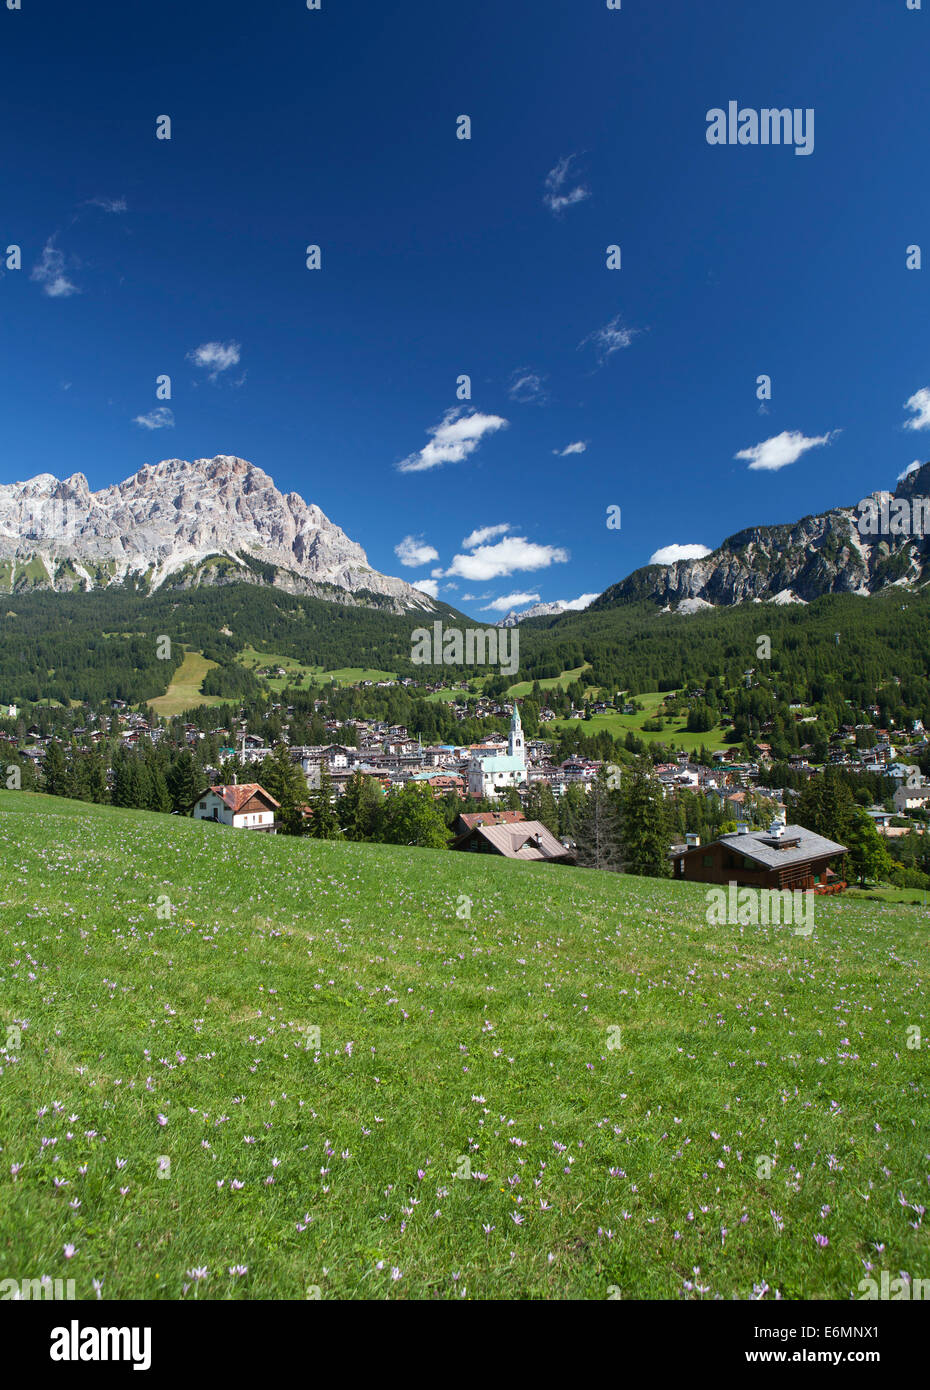 View of the town of Cortina d'Ampezzo, Province of Belluno, Veneto, Italy - Stock Image